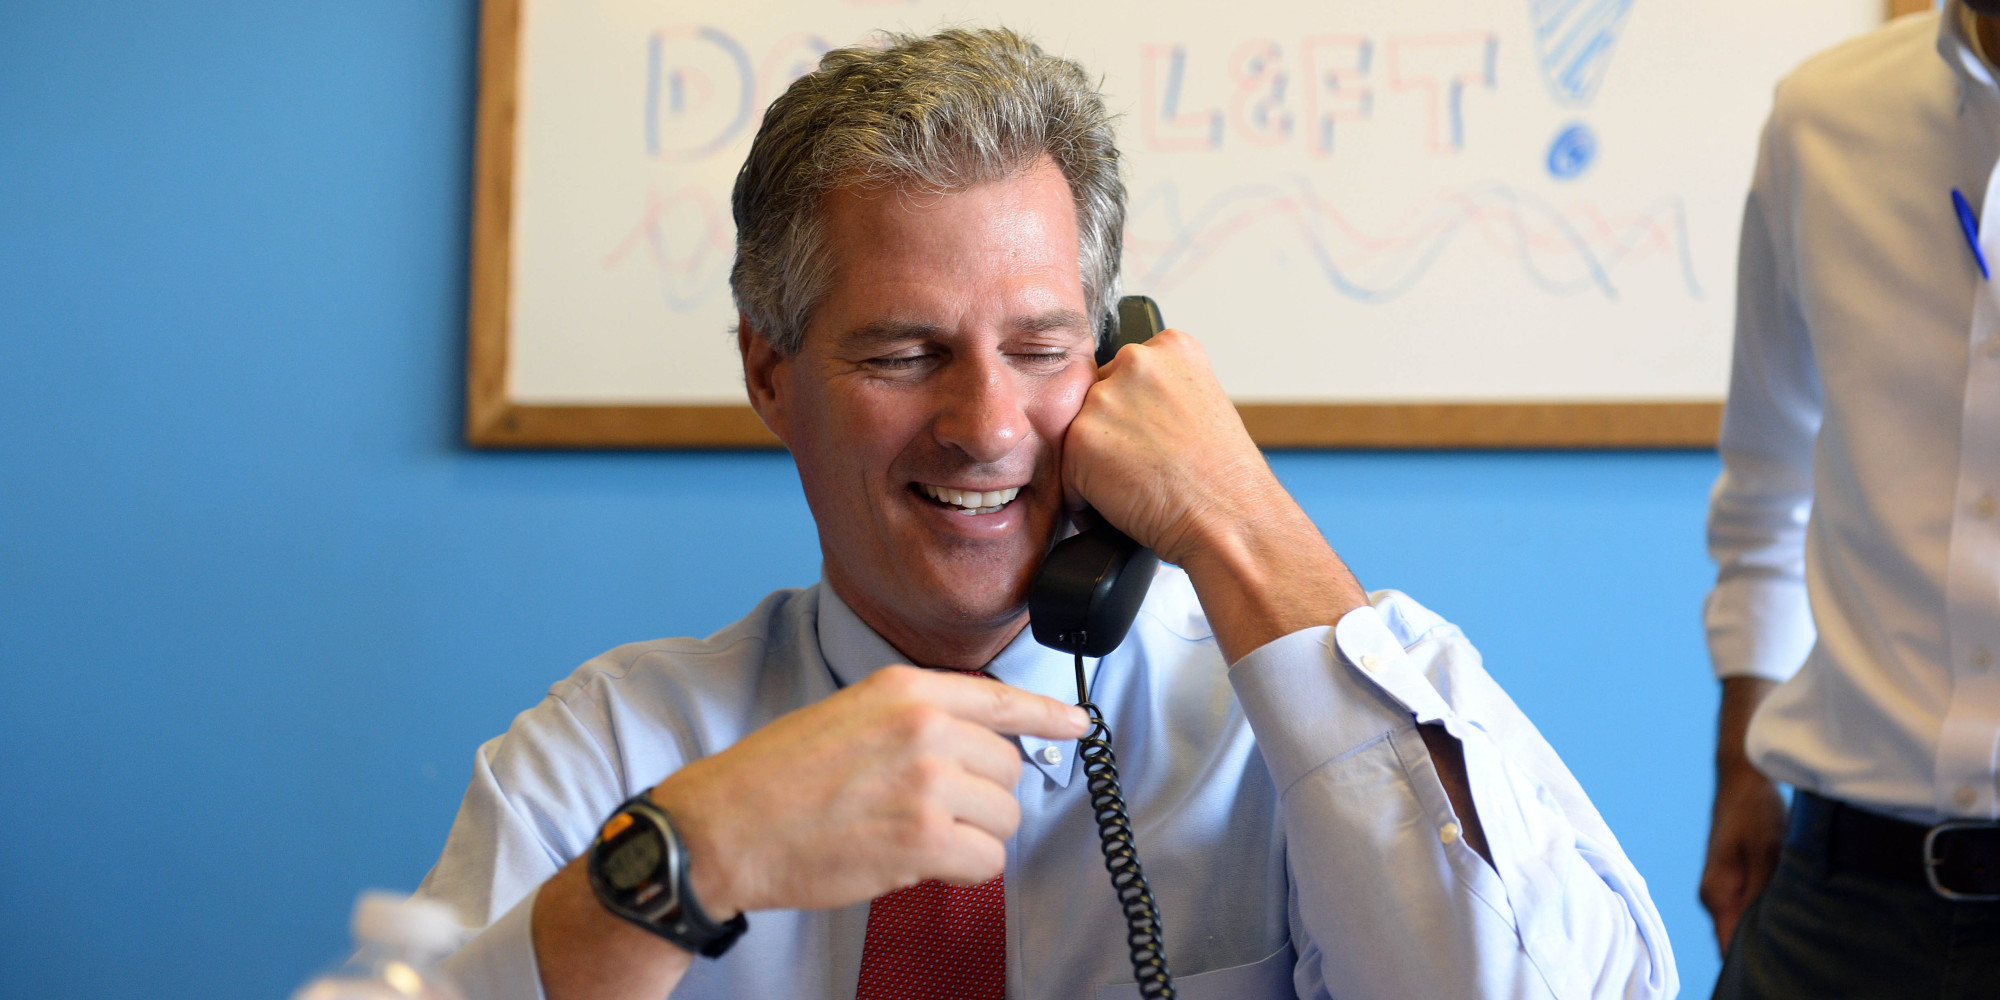 Scott Brown Lists Massachusetts As Employer In N.H. Campaign Filing ...